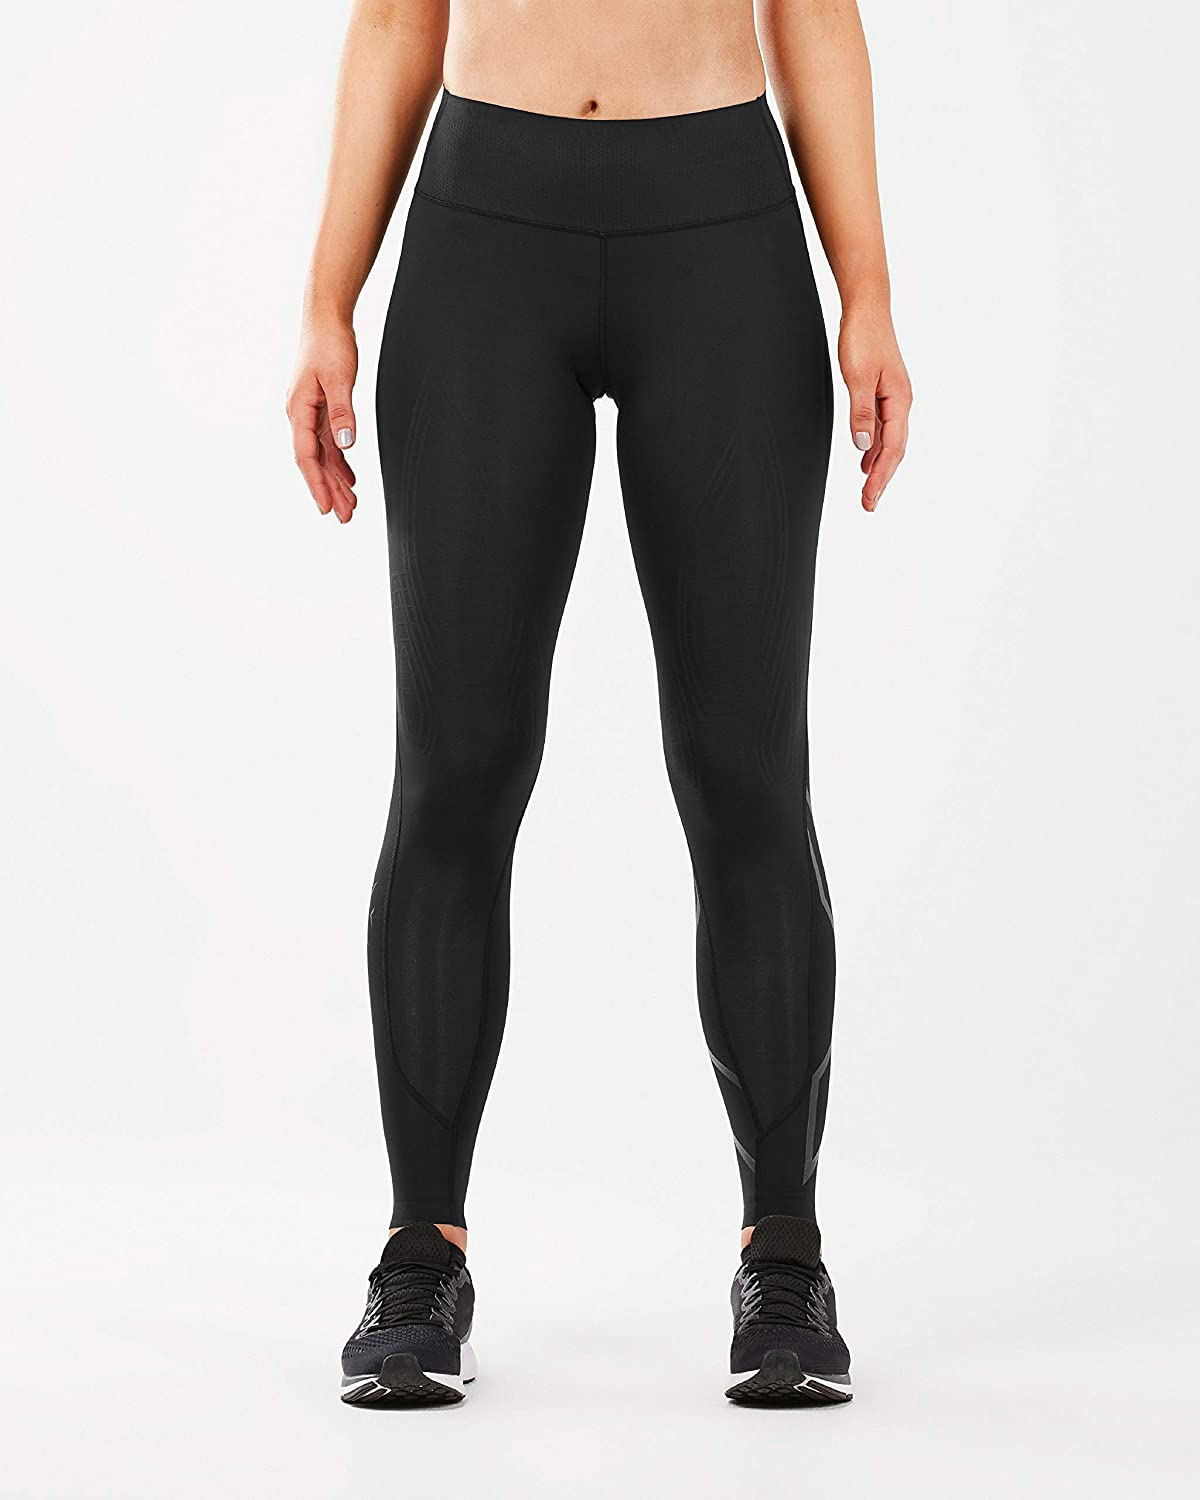 Image of 2XU MCS Cross Training Compression Tight Compression Pants & Tights